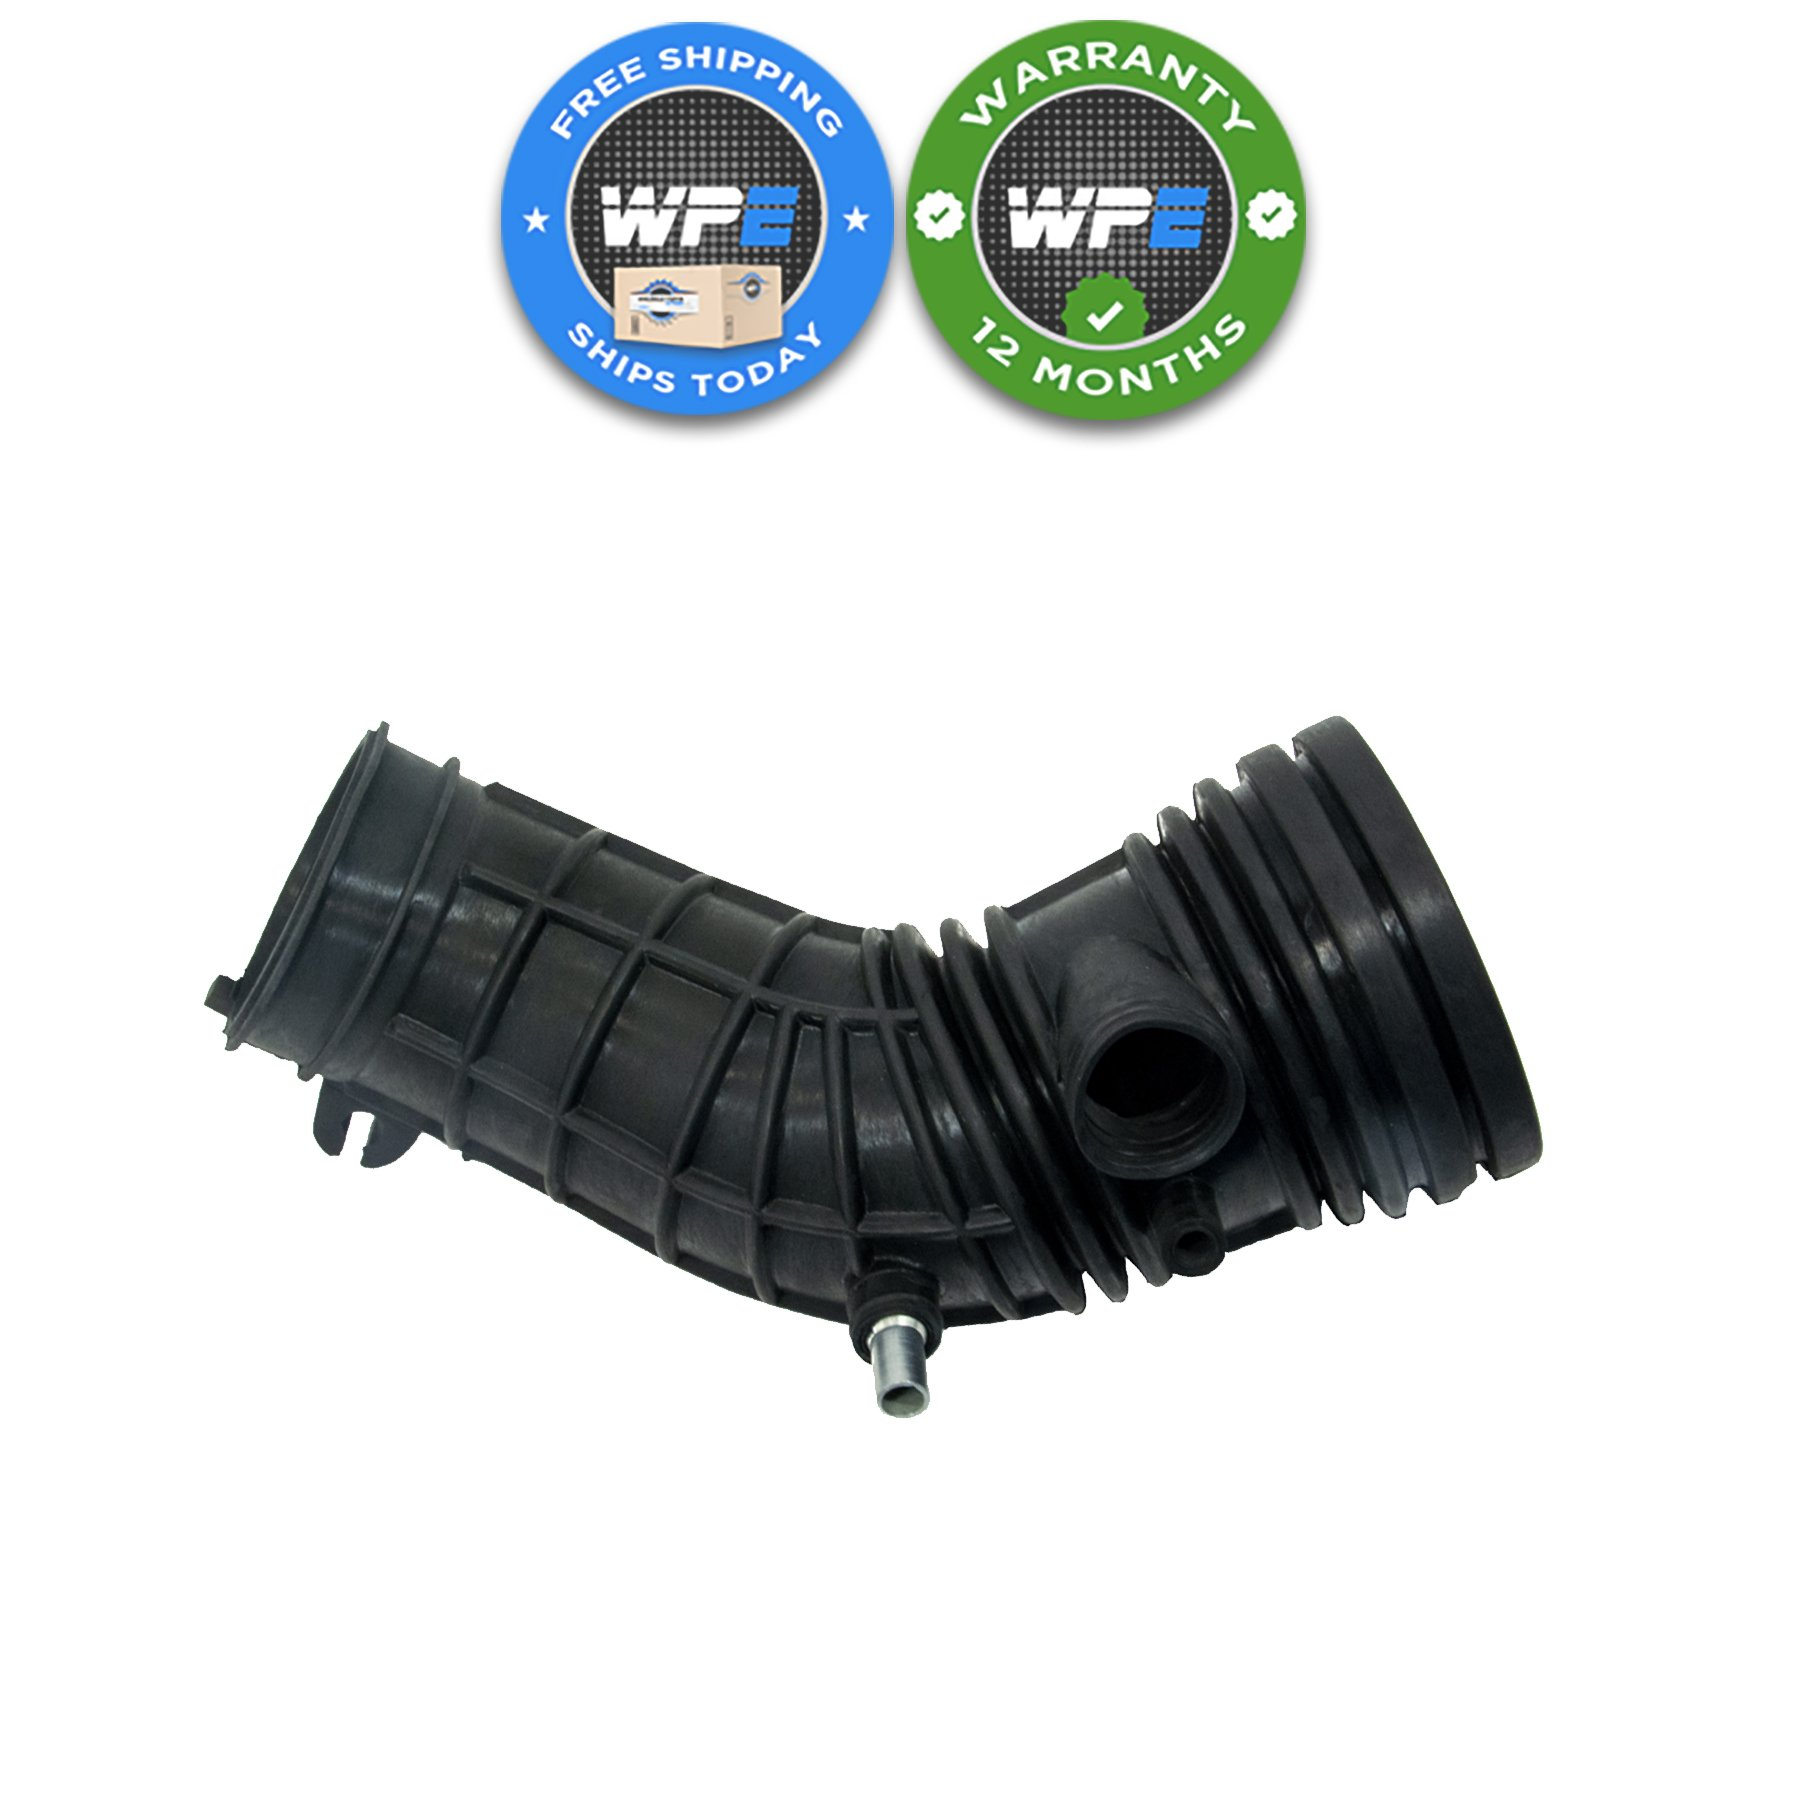 2004-2008 TSX New Air Intake Hose/Tube Duct Replaces OEM